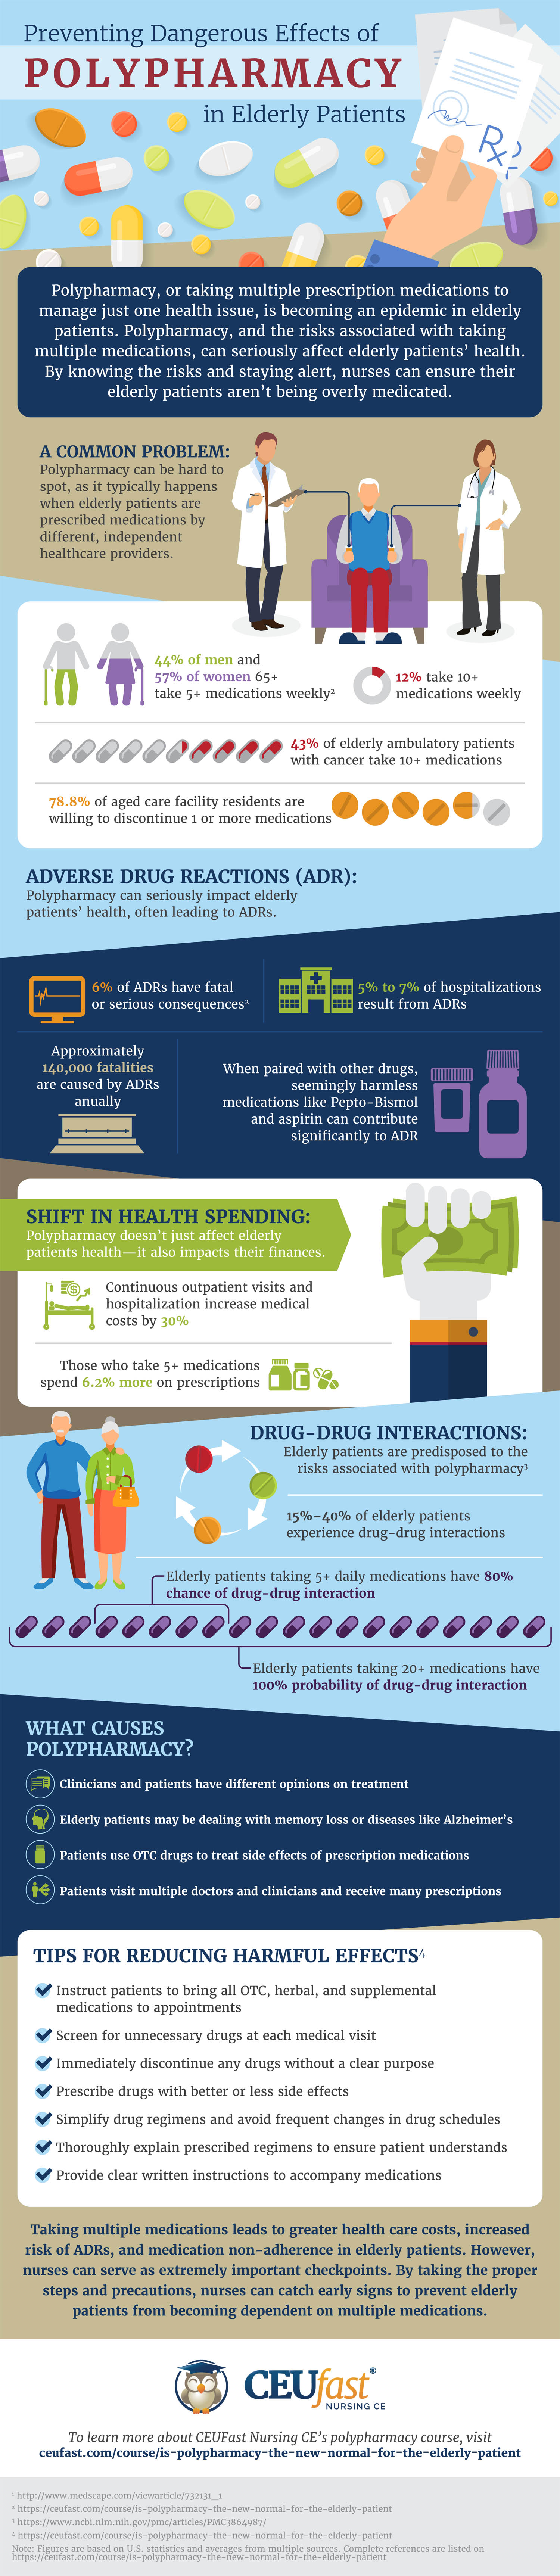 Preventing Dangerous Effects of Polypharmacy in Elderly Patients